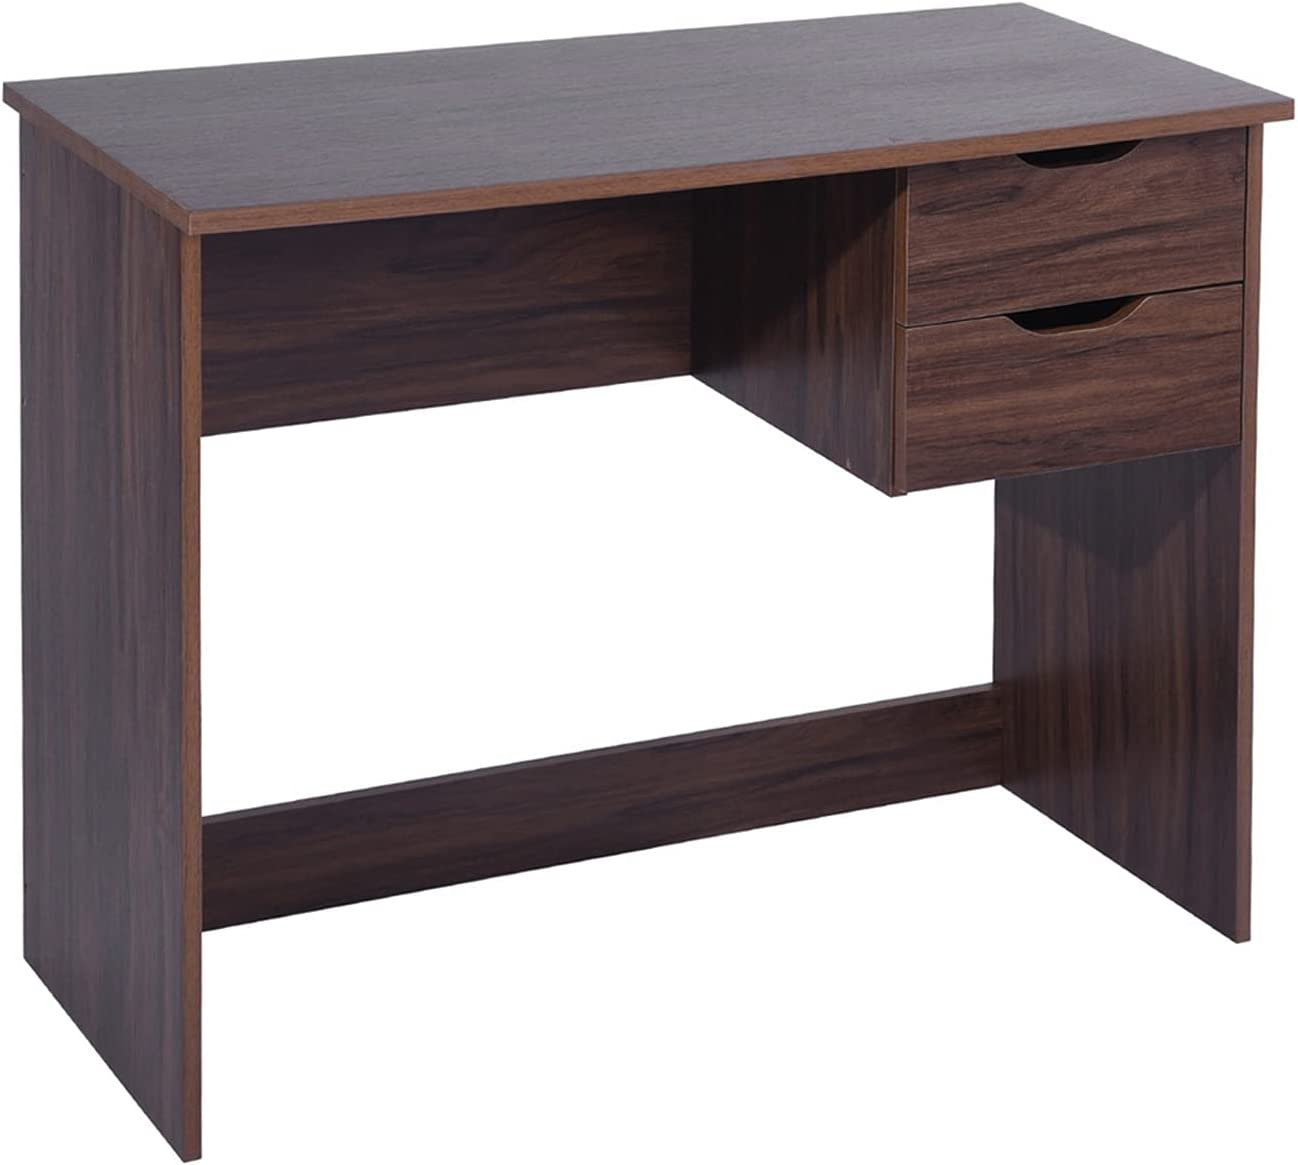 National products AIWKR Study Computer Desk Home 4 years warranty Office Simple Writing Modern